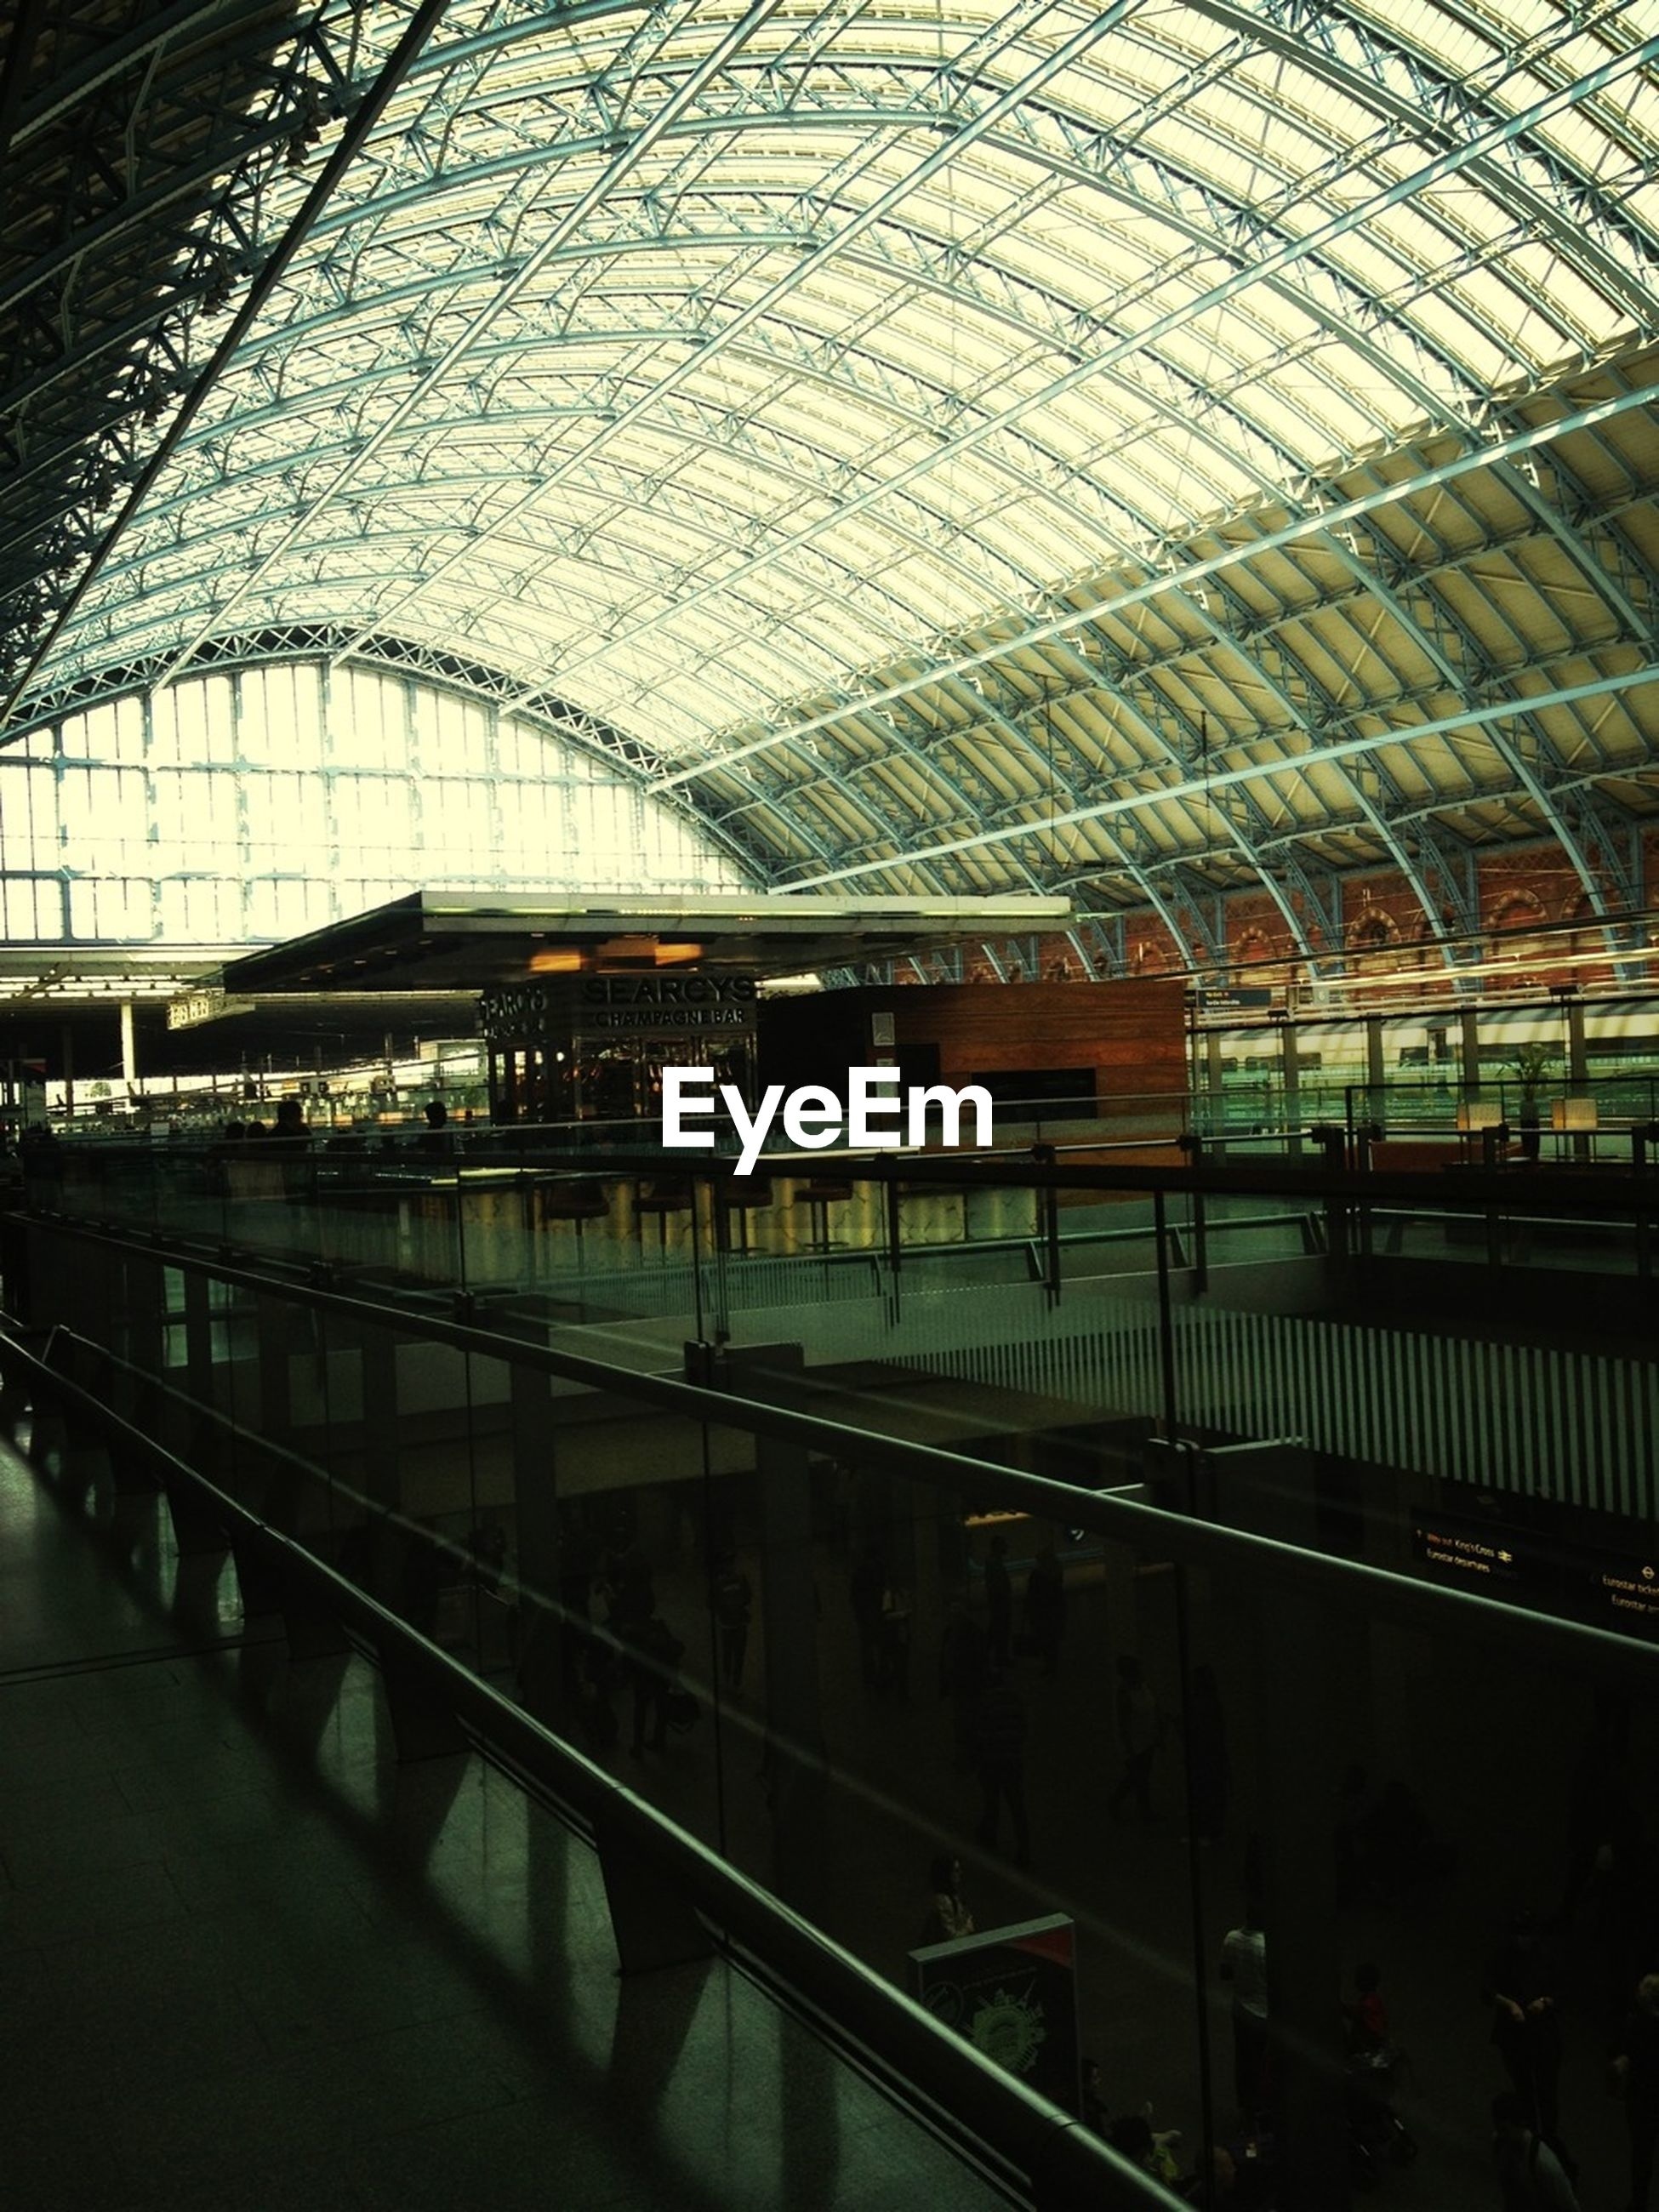 indoors, railroad station, ceiling, rail transportation, public transportation, railroad station platform, railroad track, transportation, architecture, built structure, travel, illuminated, interior, incidental people, subway station, train - vehicle, transportation building - type of building, architectural column, subway, high angle view